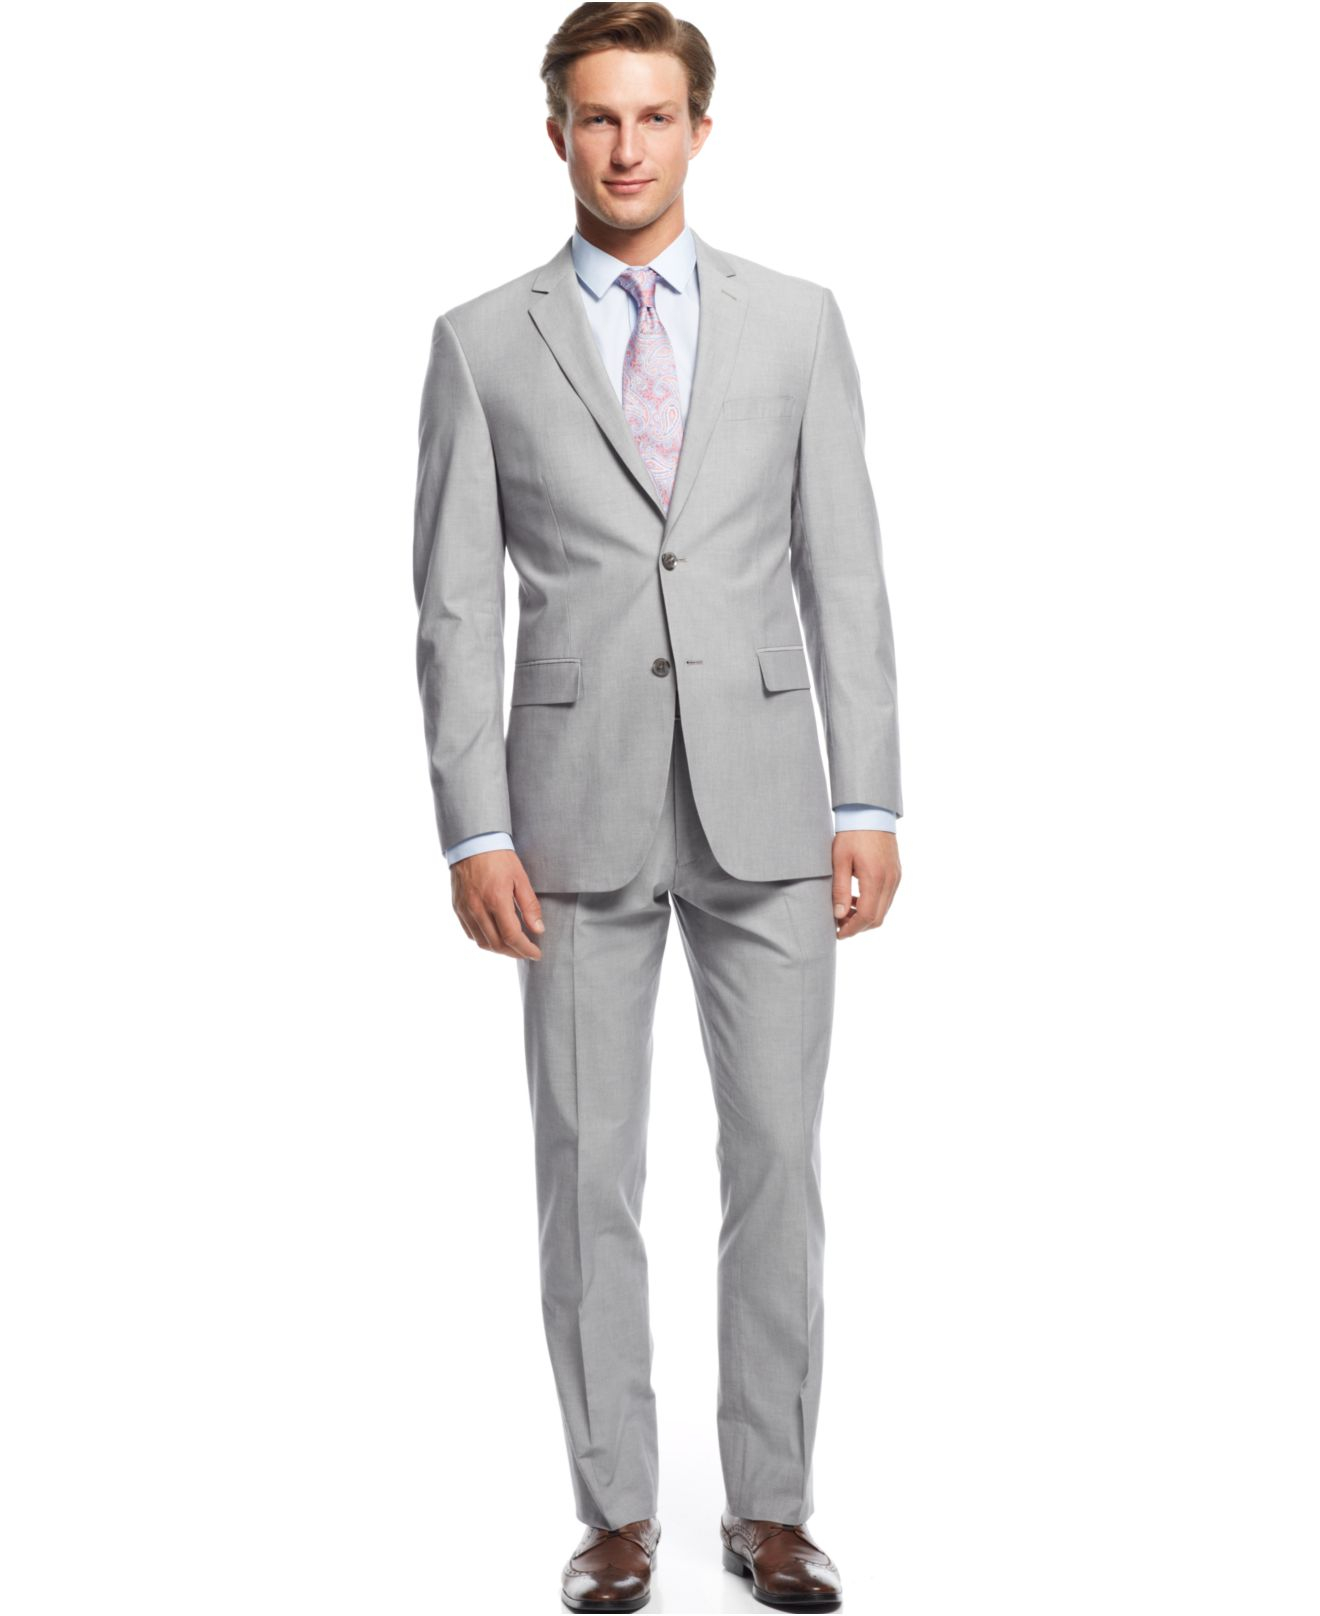 Light grey suits are incredibly popular right now, especially for weddings. This grey slim fit suit is particularly in demand with it's ultra-soft polyblend fabric, slim notch lapel, and tapered sleeves that complete the slim fit look.